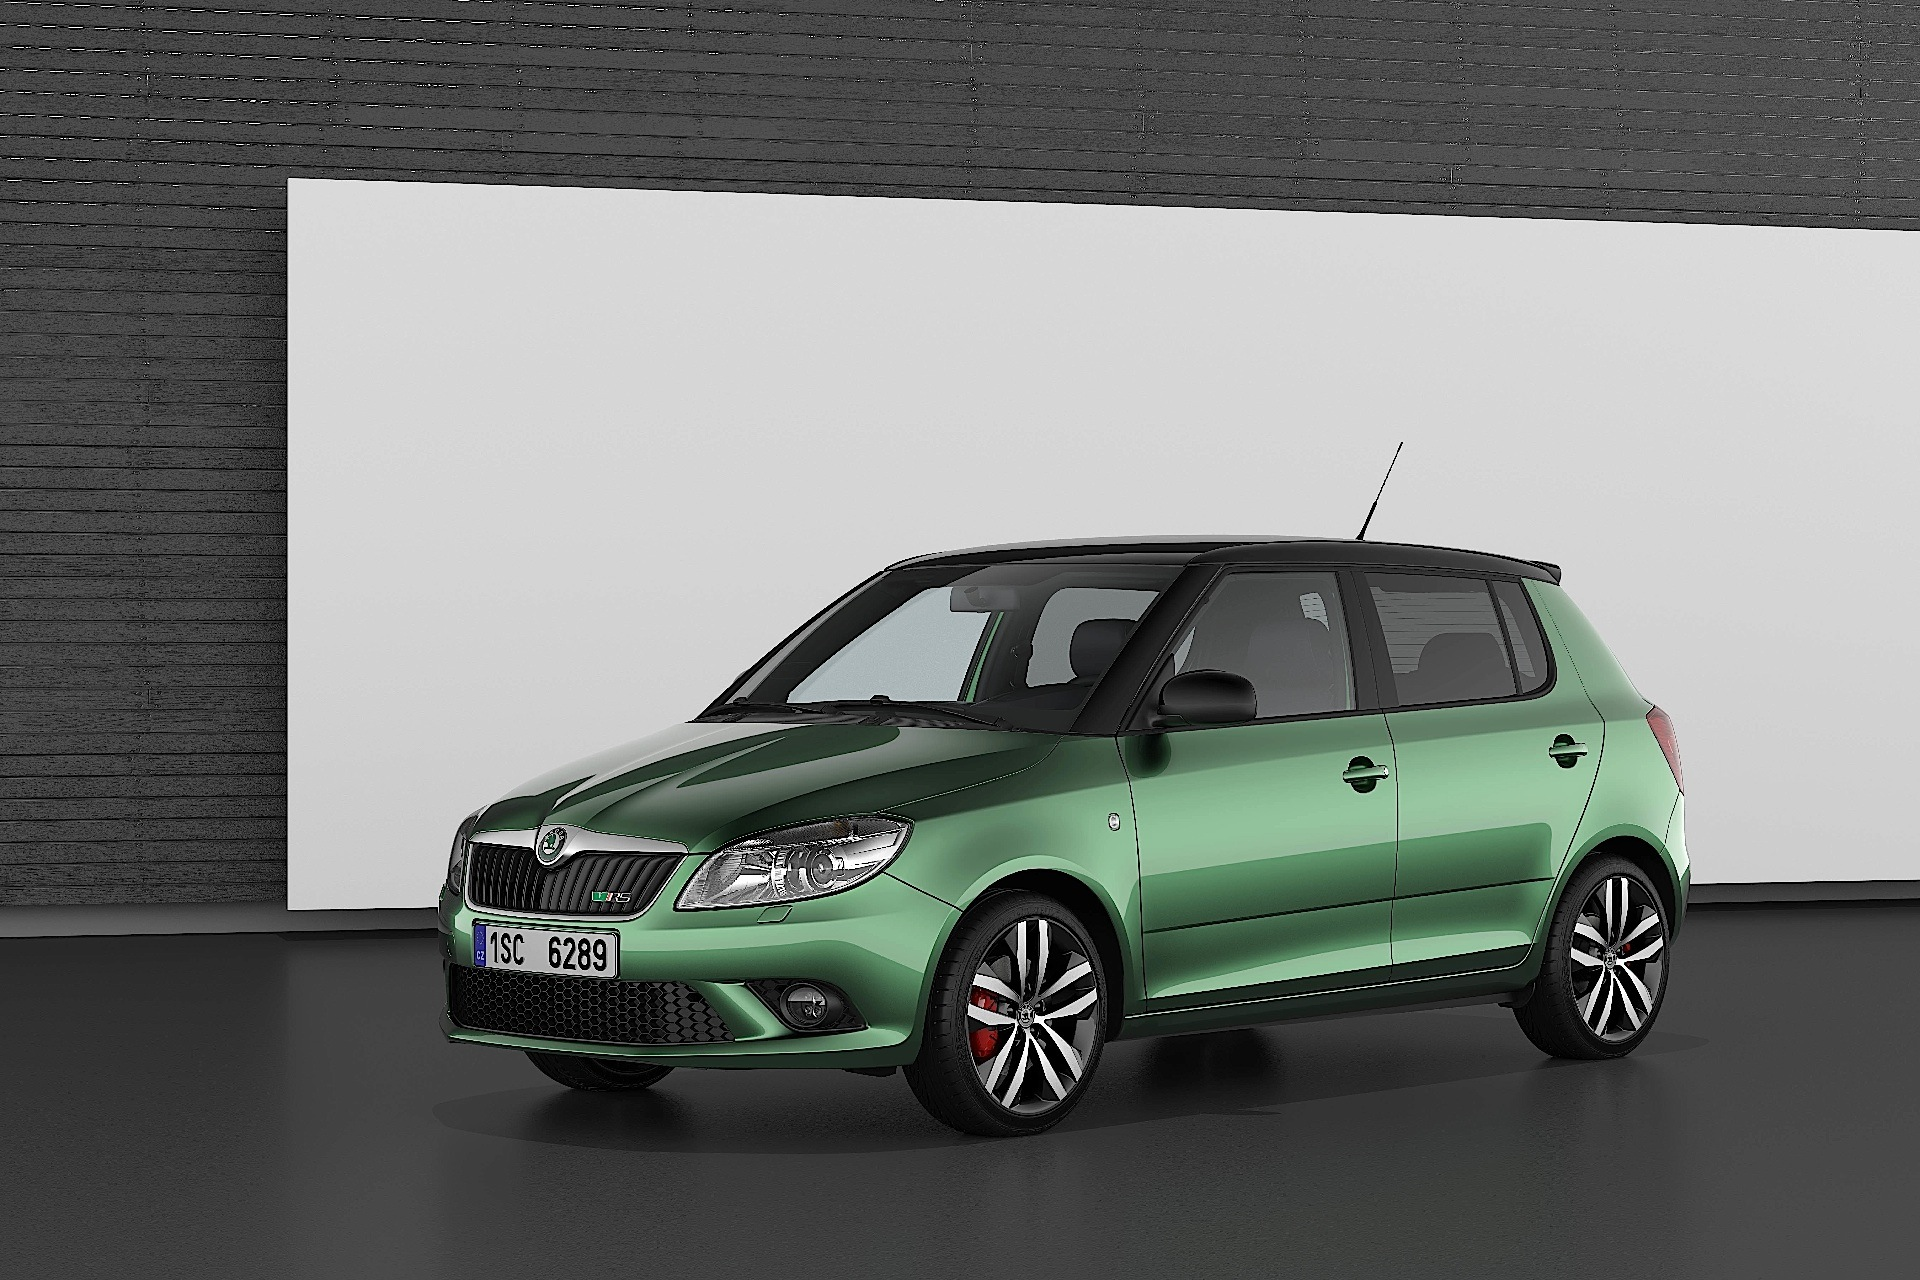 skoda fabia rs specs 2010 2011 2012 2013 2014 autoevolution. Black Bedroom Furniture Sets. Home Design Ideas